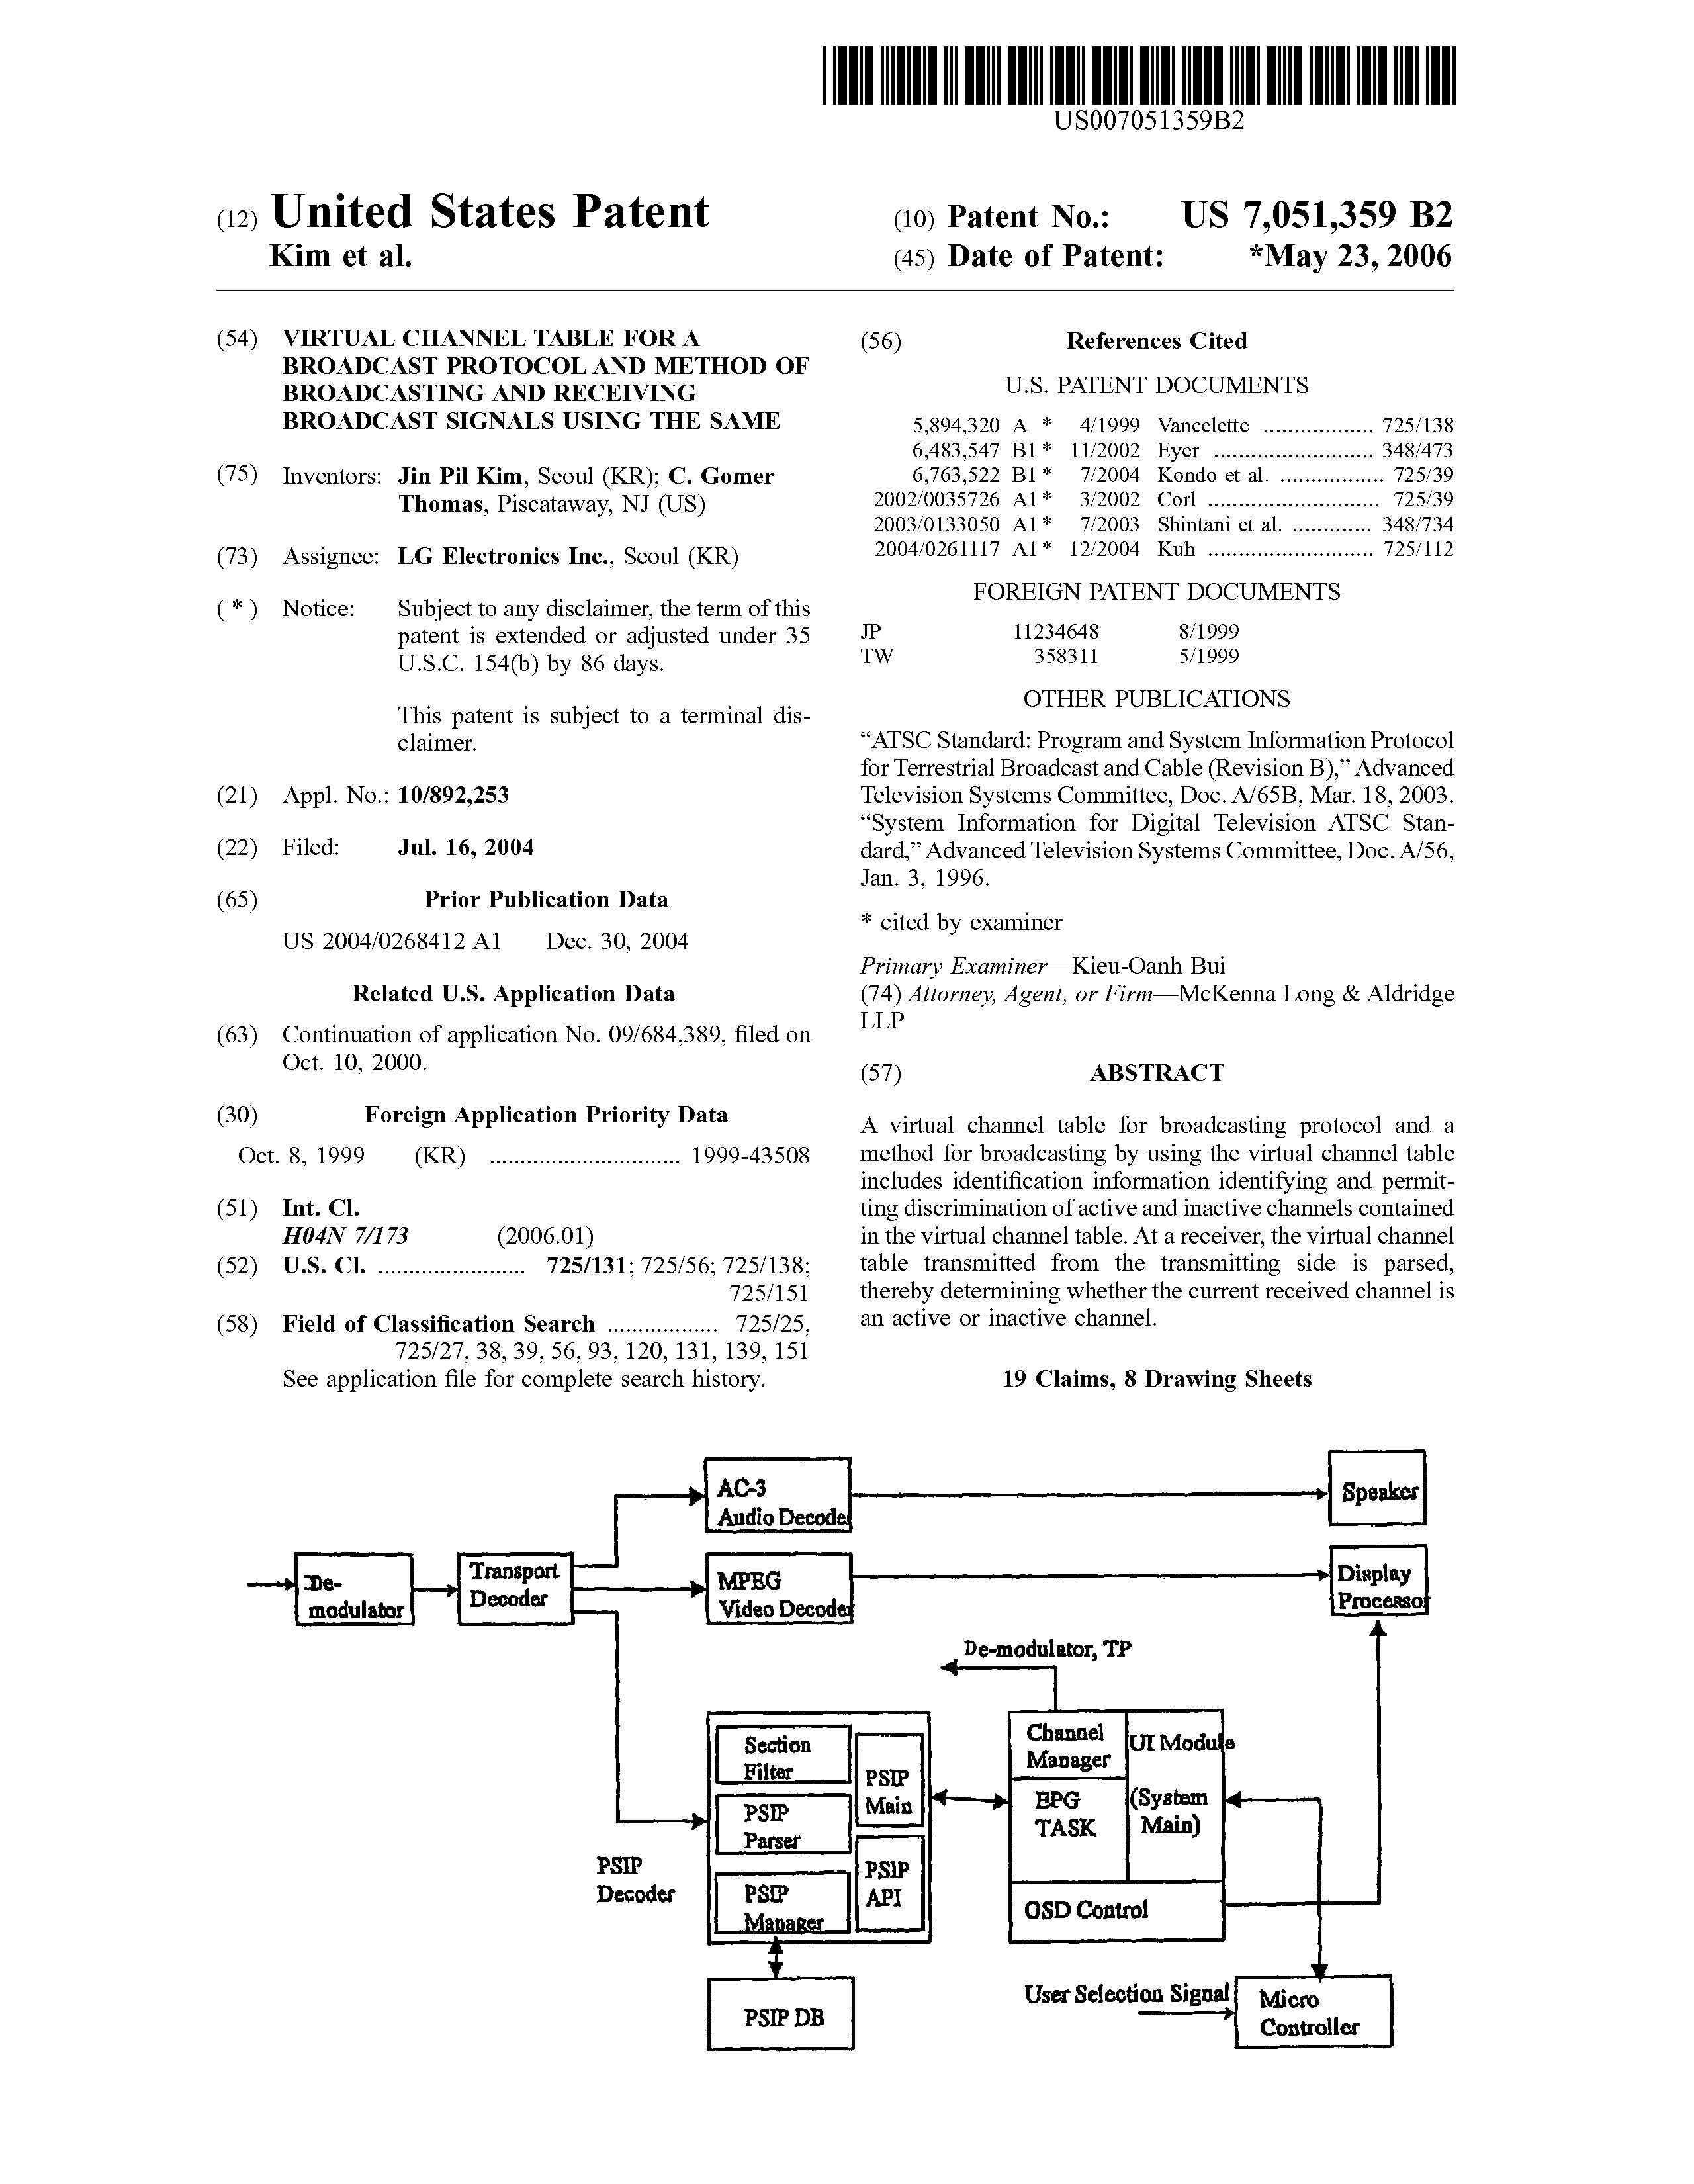 US 7051359 B2 - Virtual Channel Table For A Broadcast